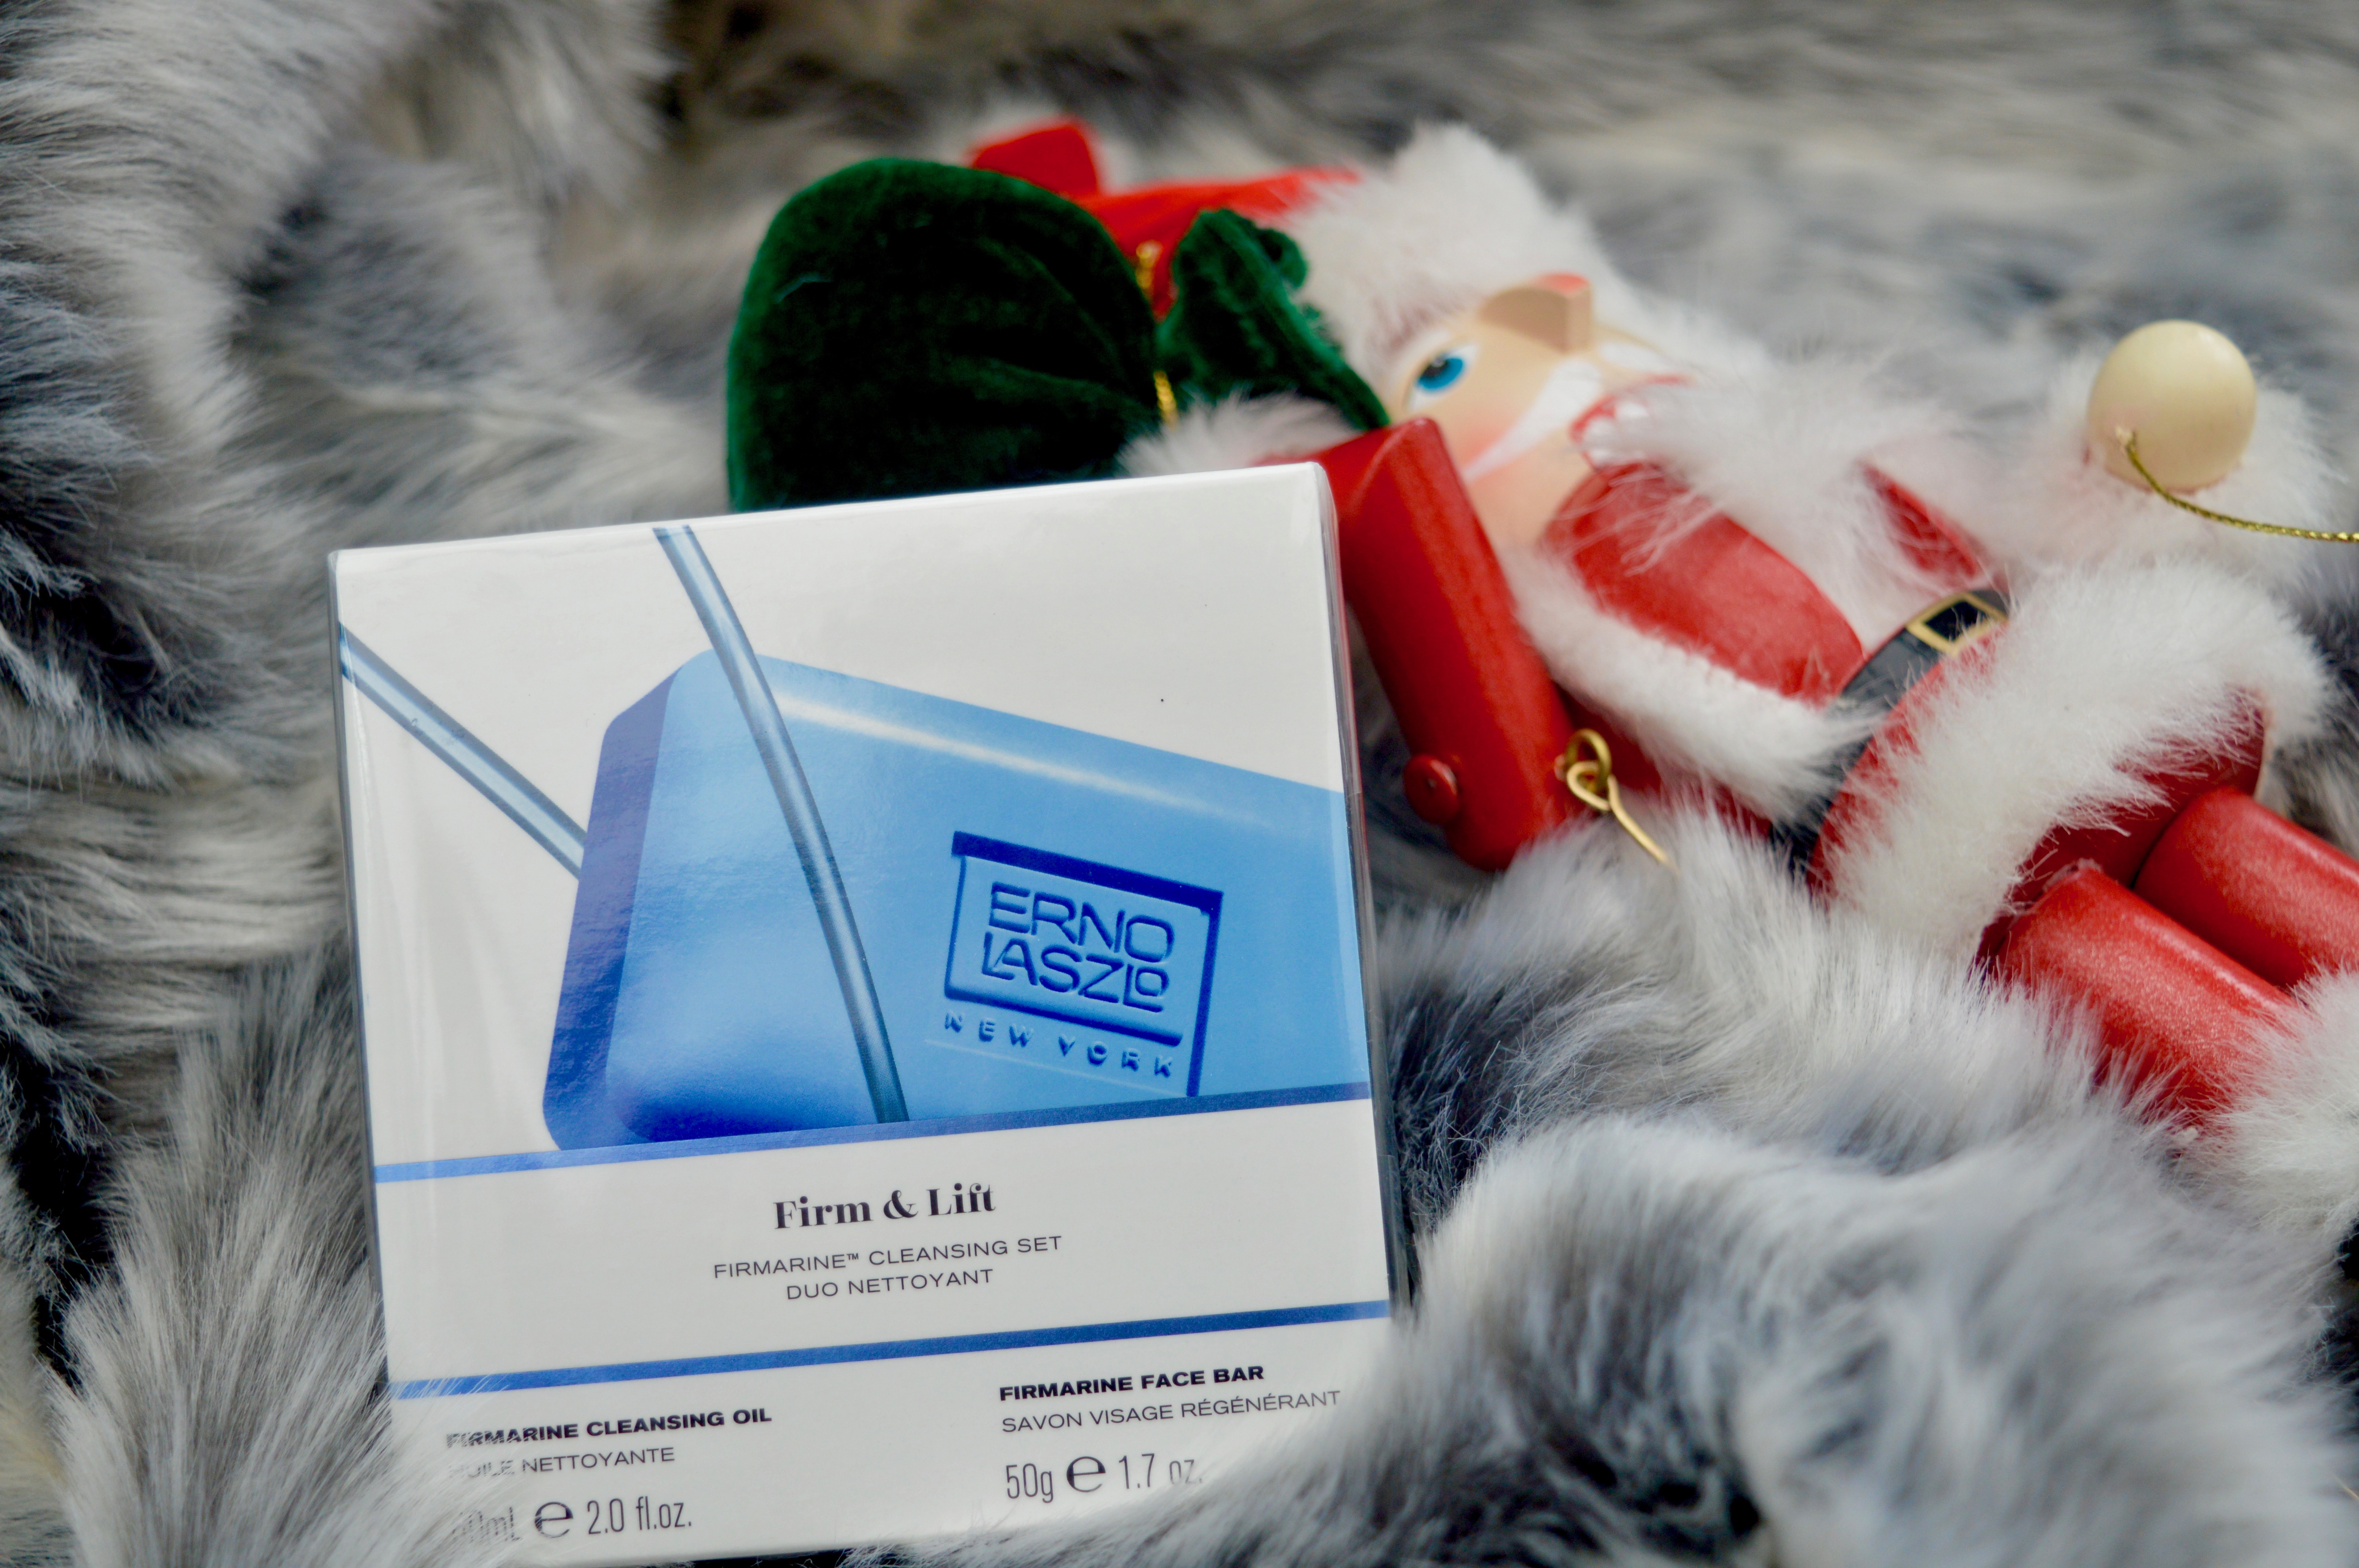 Firmarine Cleansing Set   Erno Laszlo New York   Beauty Regime   Christmas Gift Guide - What to buy your Grandma   Elle Blonde Luxury Lifestyle Destination Blog